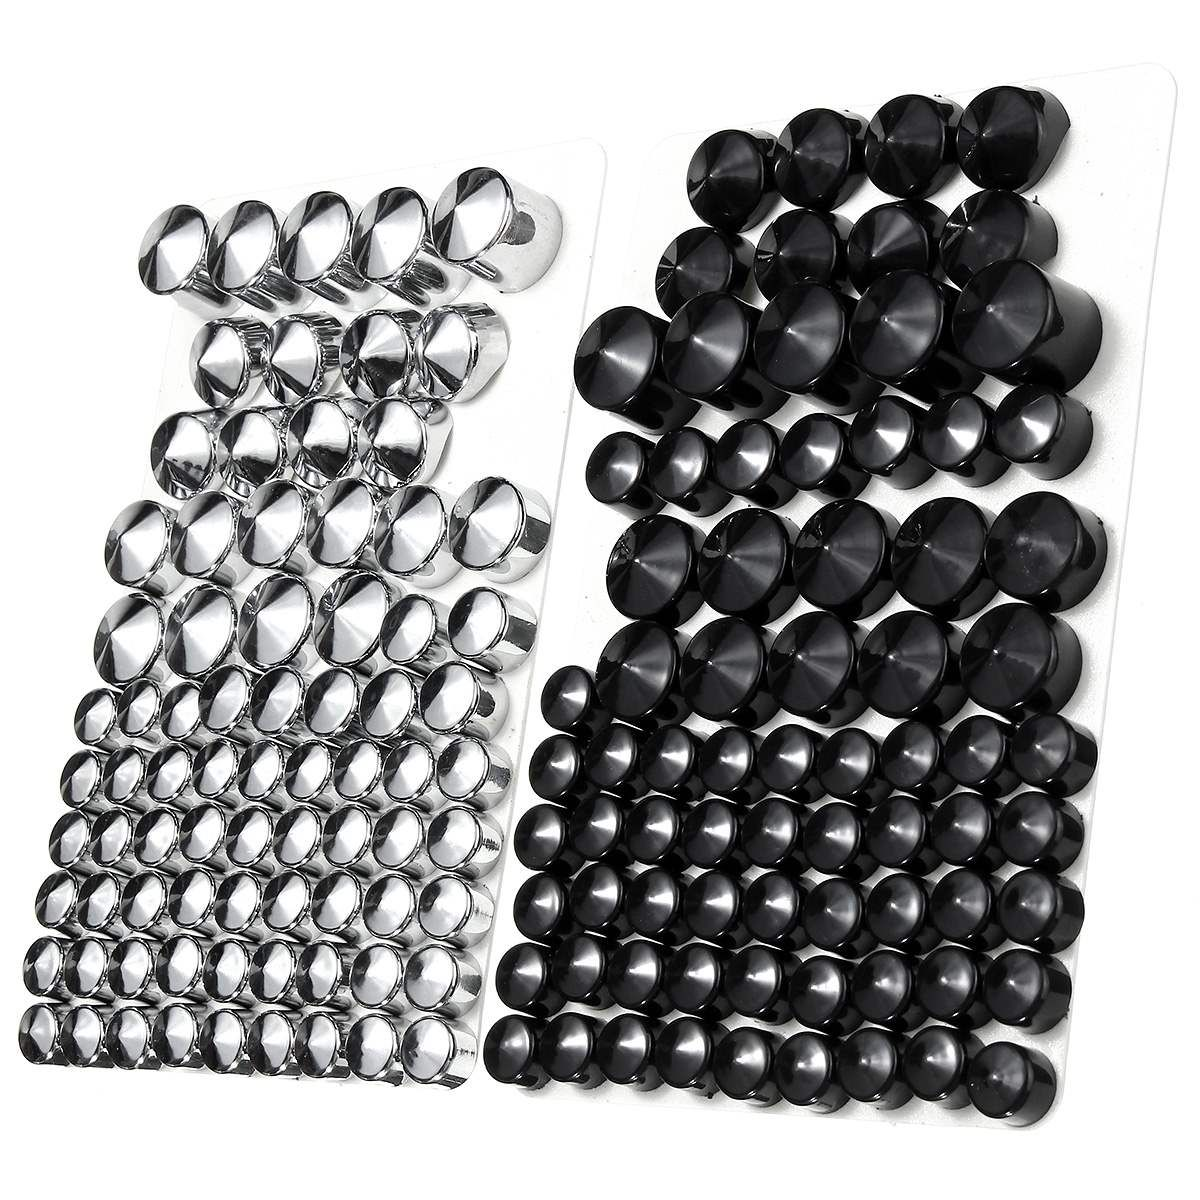 76pc Motorcycle Screw Bolt Topper Caps Cover For Harley-Davidson Twin Cam/Dyna 1991-2013 UK ABS Plastic Chrome Black